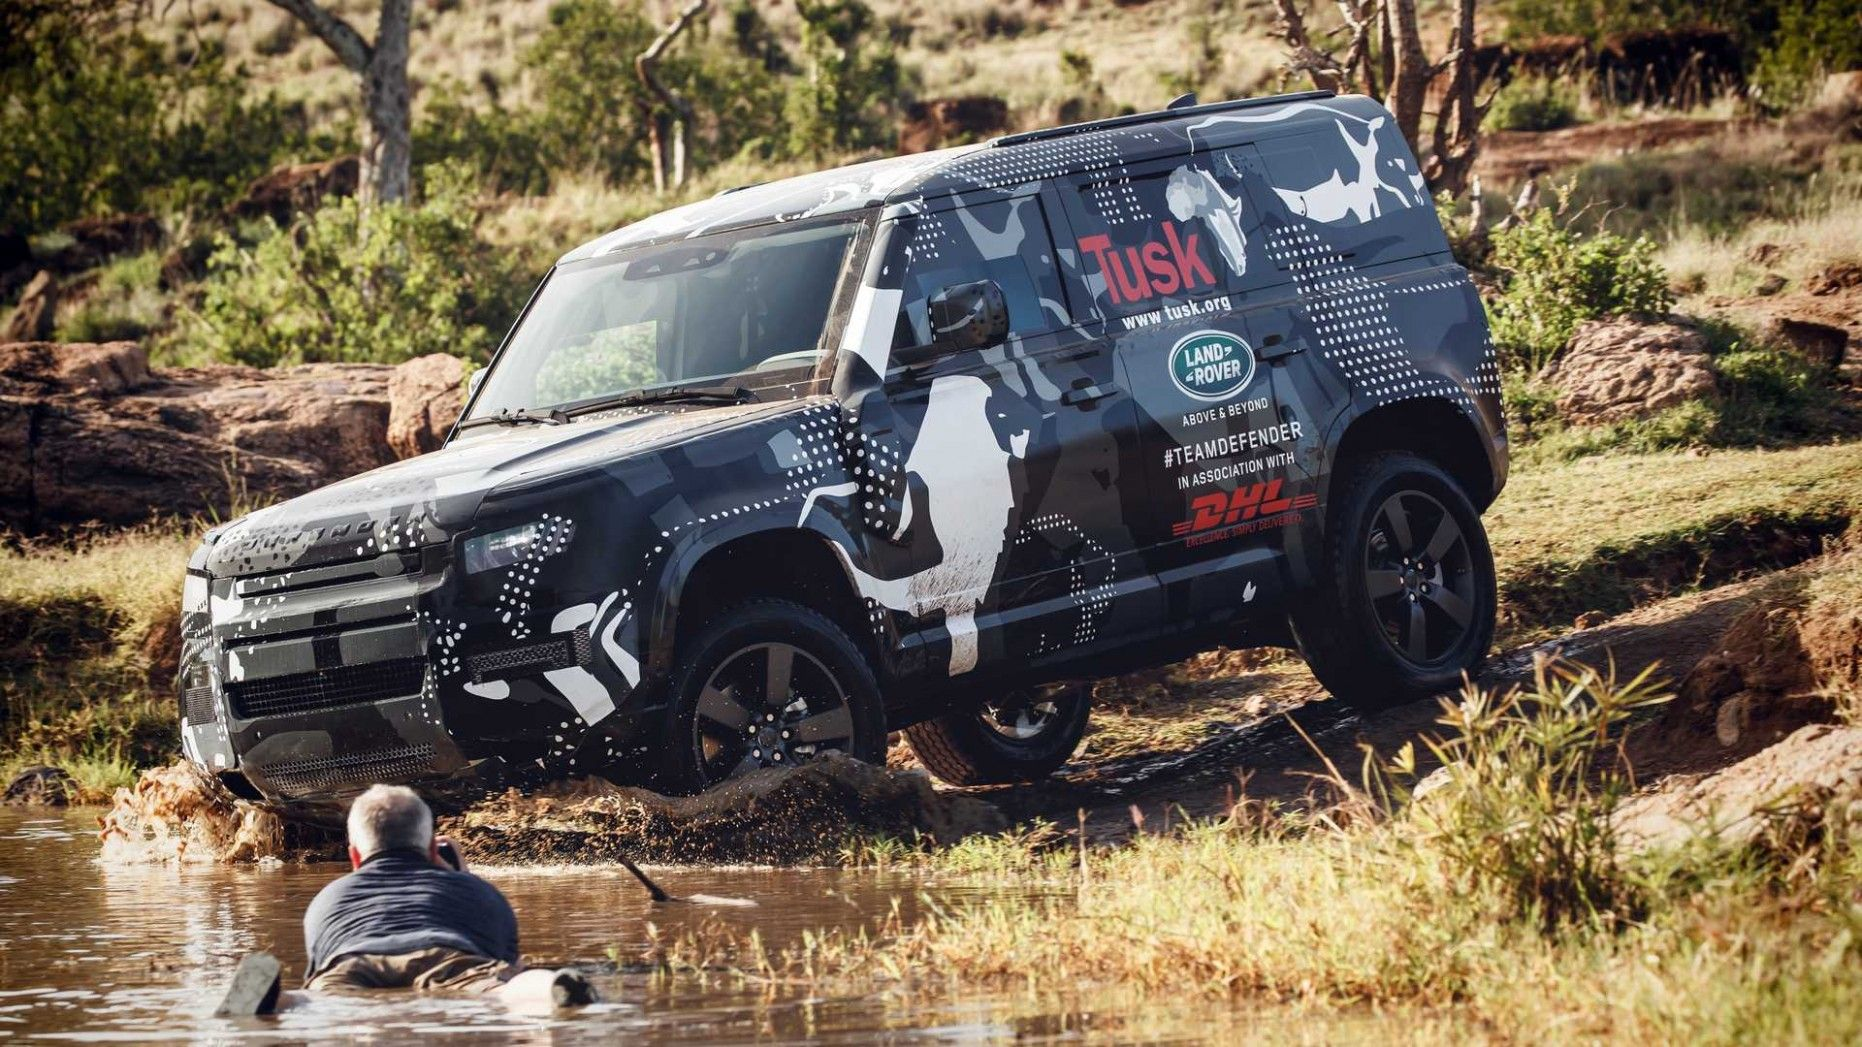 2021 Land Rover Defender Review And Release Date | Land ...